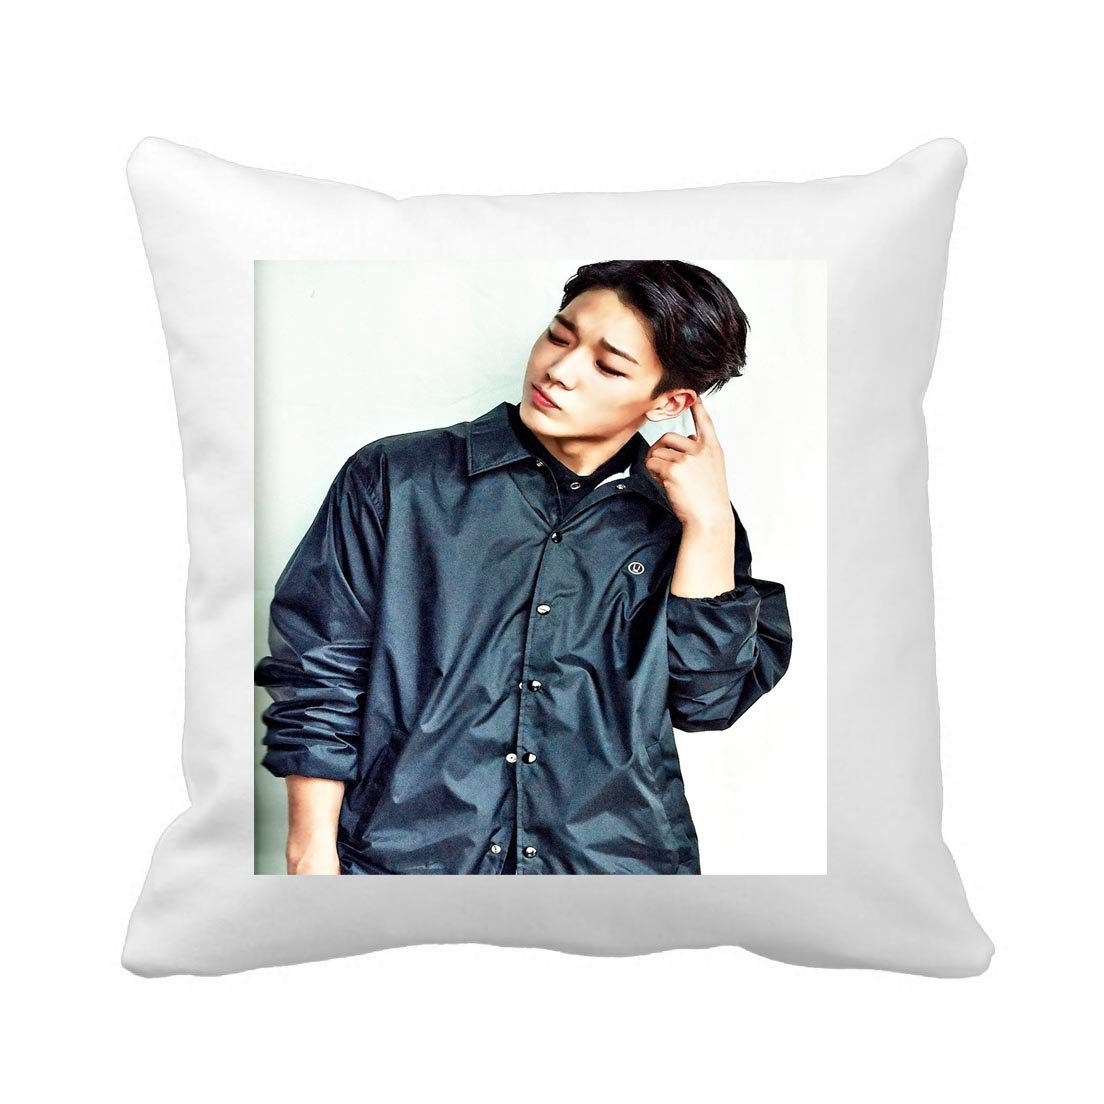 c1 Kpop iKon 14x14 Overdose Throw Hold Pillow Bolster Sofa Cushion B.I. Bobby Group YG Pillowcases (a)